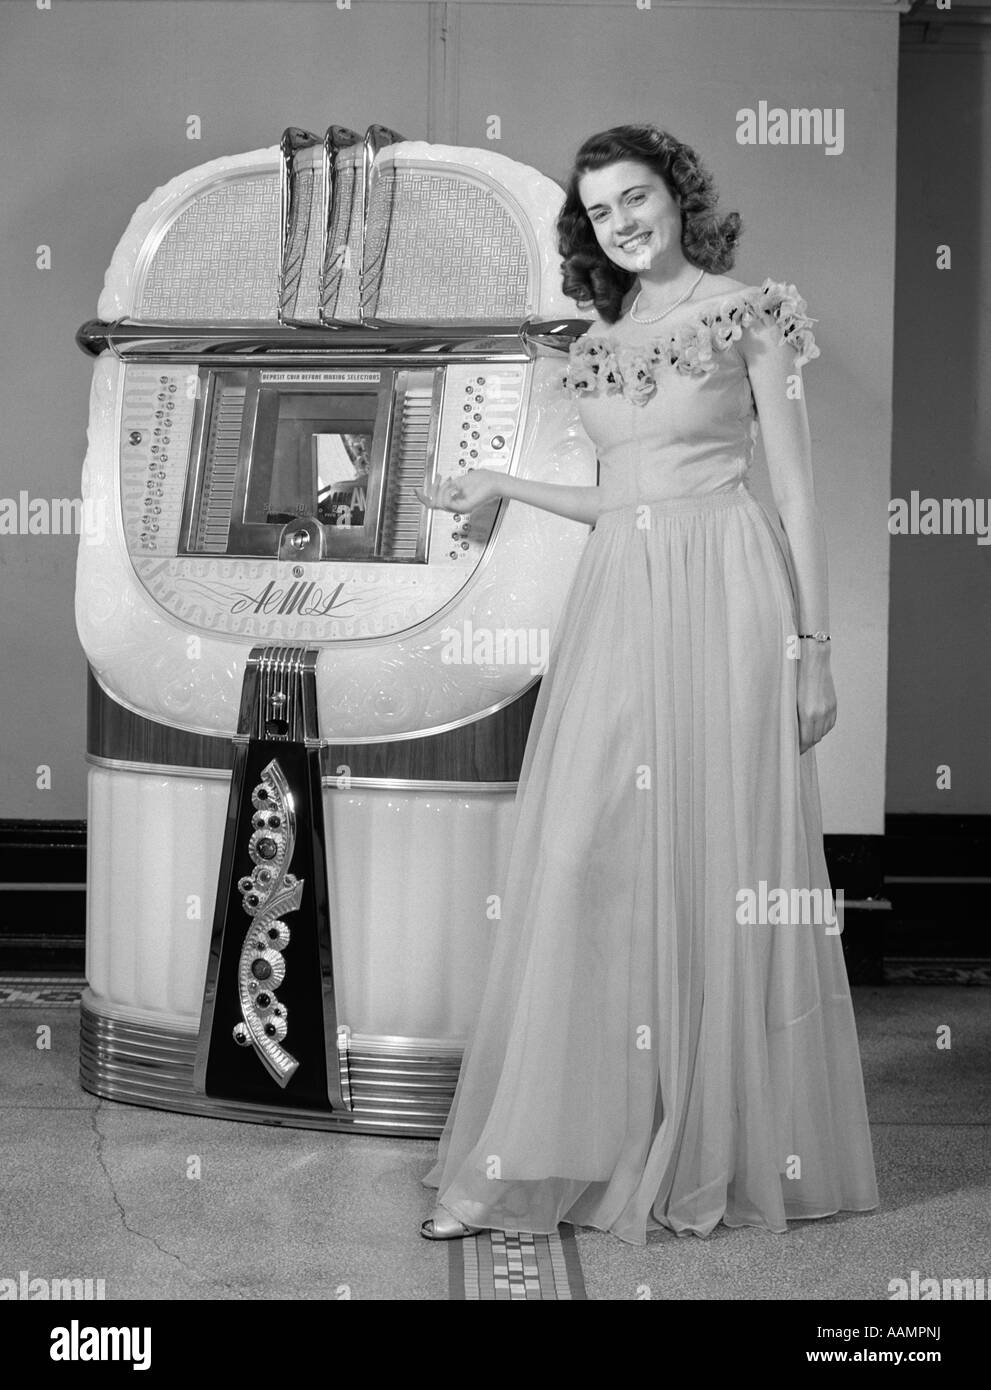 Woman In Ball Gown Stockfotos & Woman In Ball Gown Bilder - Alamy